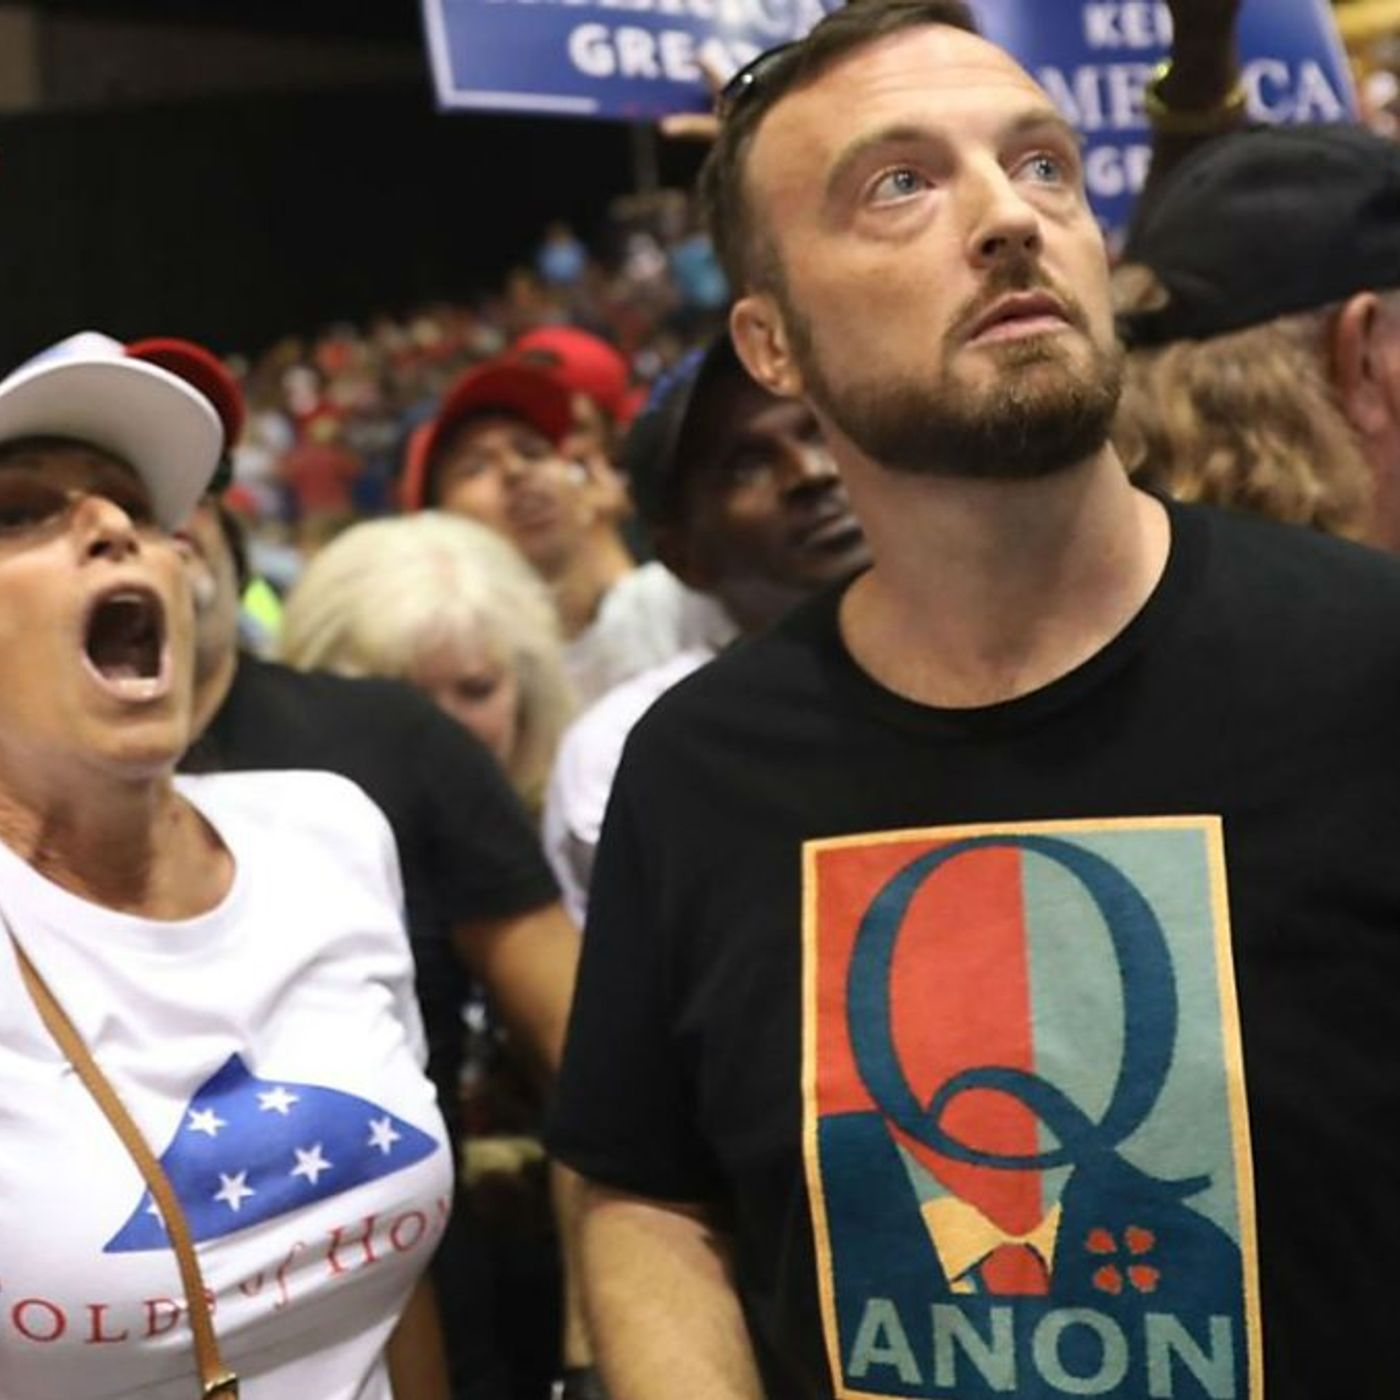 Evangelicals and a Conspiracy Theory Called Qanon